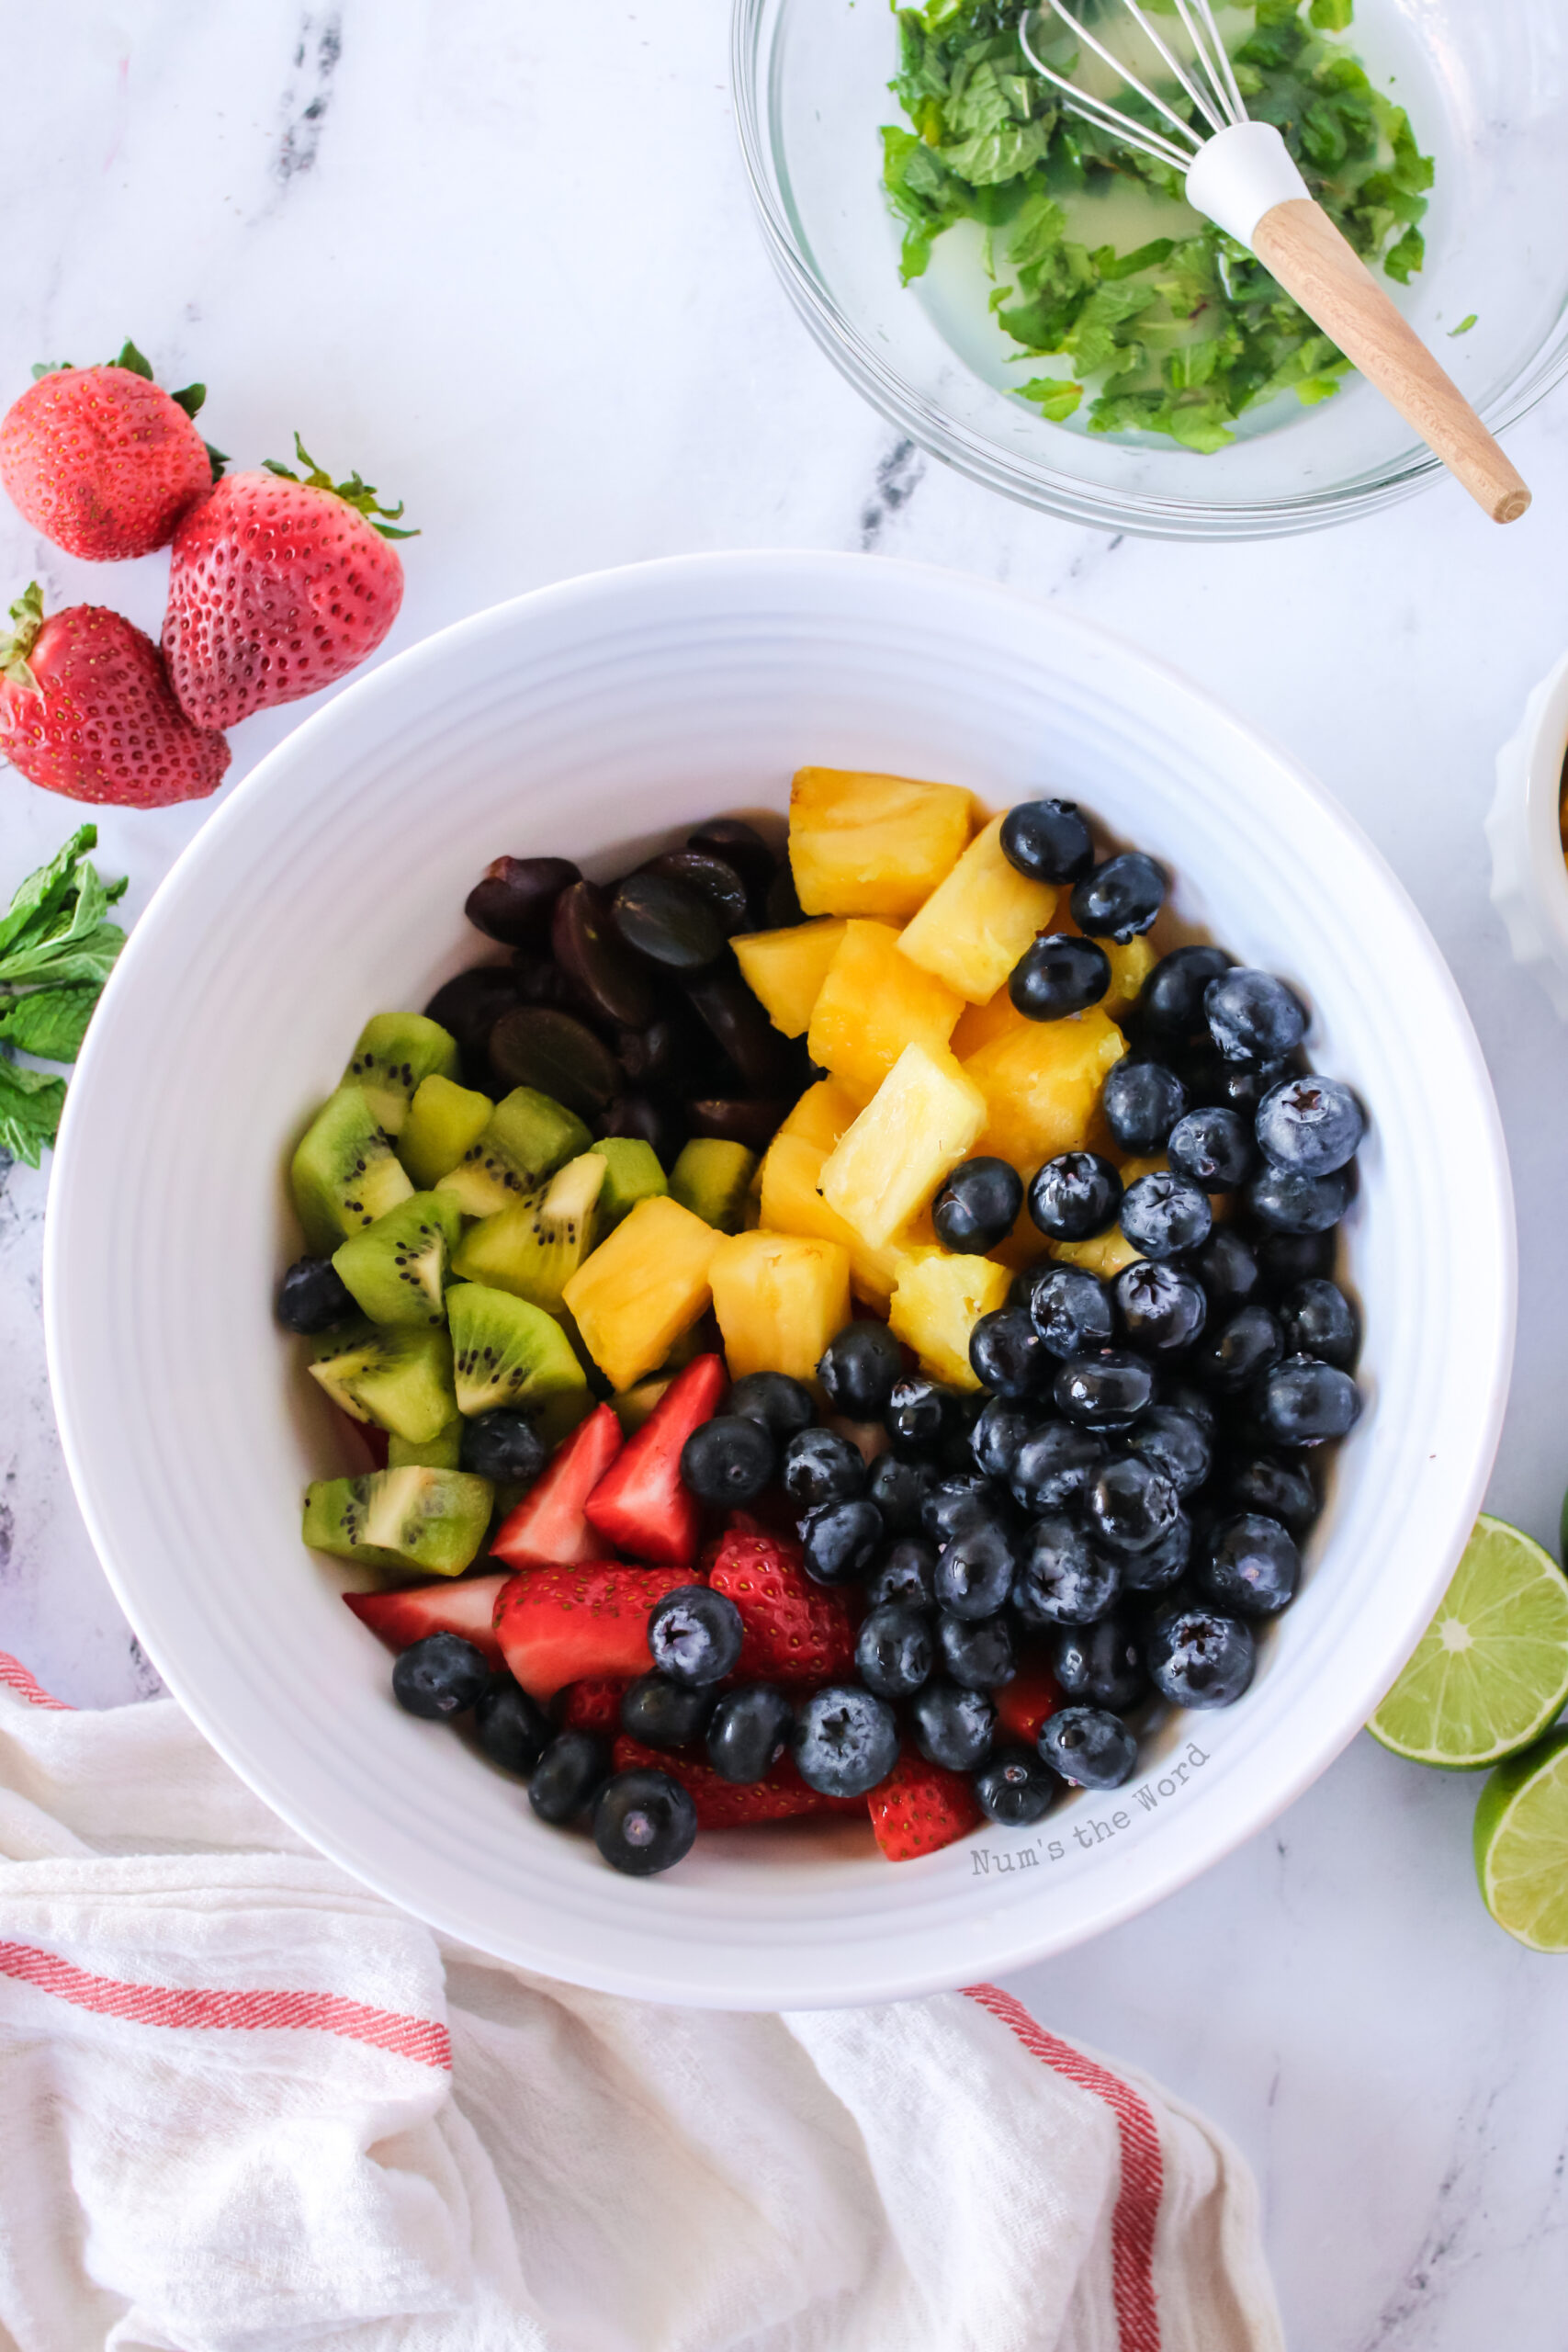 all cut fresh fruit in a bowl, not mixed.